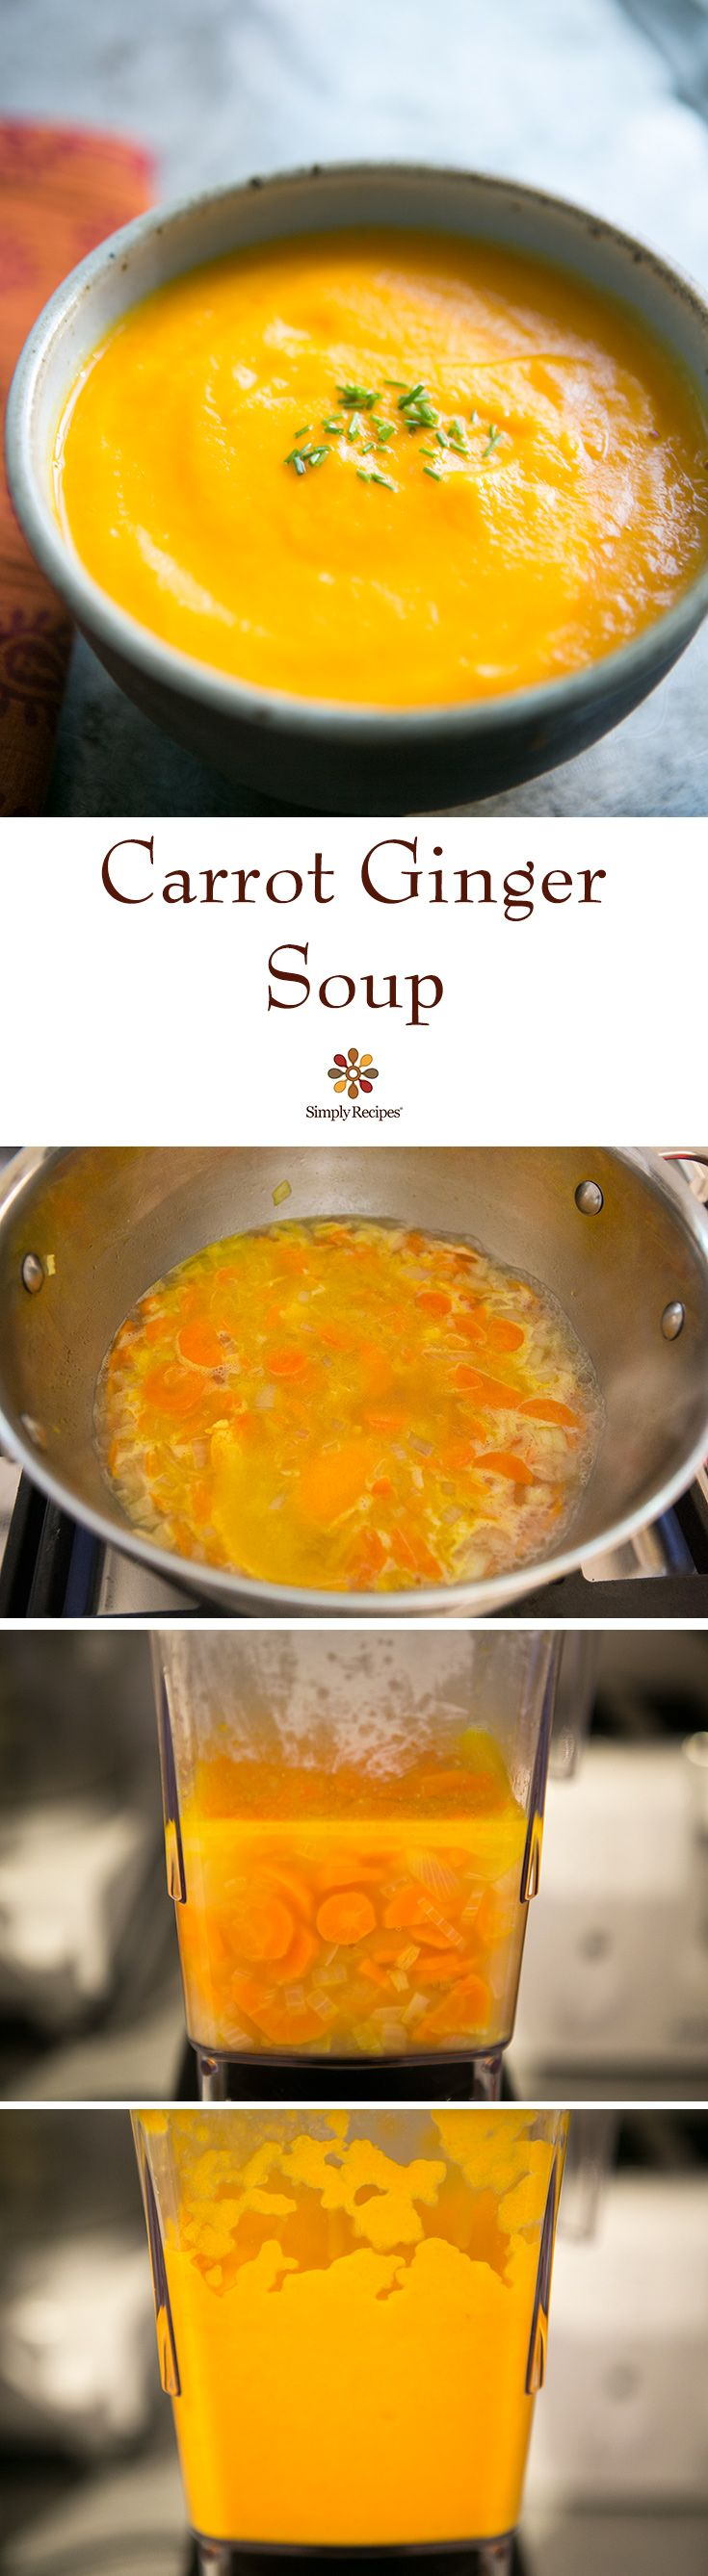 Carrot Ginger Soup ~ Smooth carrot soup with ginger, orange and chicken stock. So easy and healthy too! ~ SimplyRecipes.com